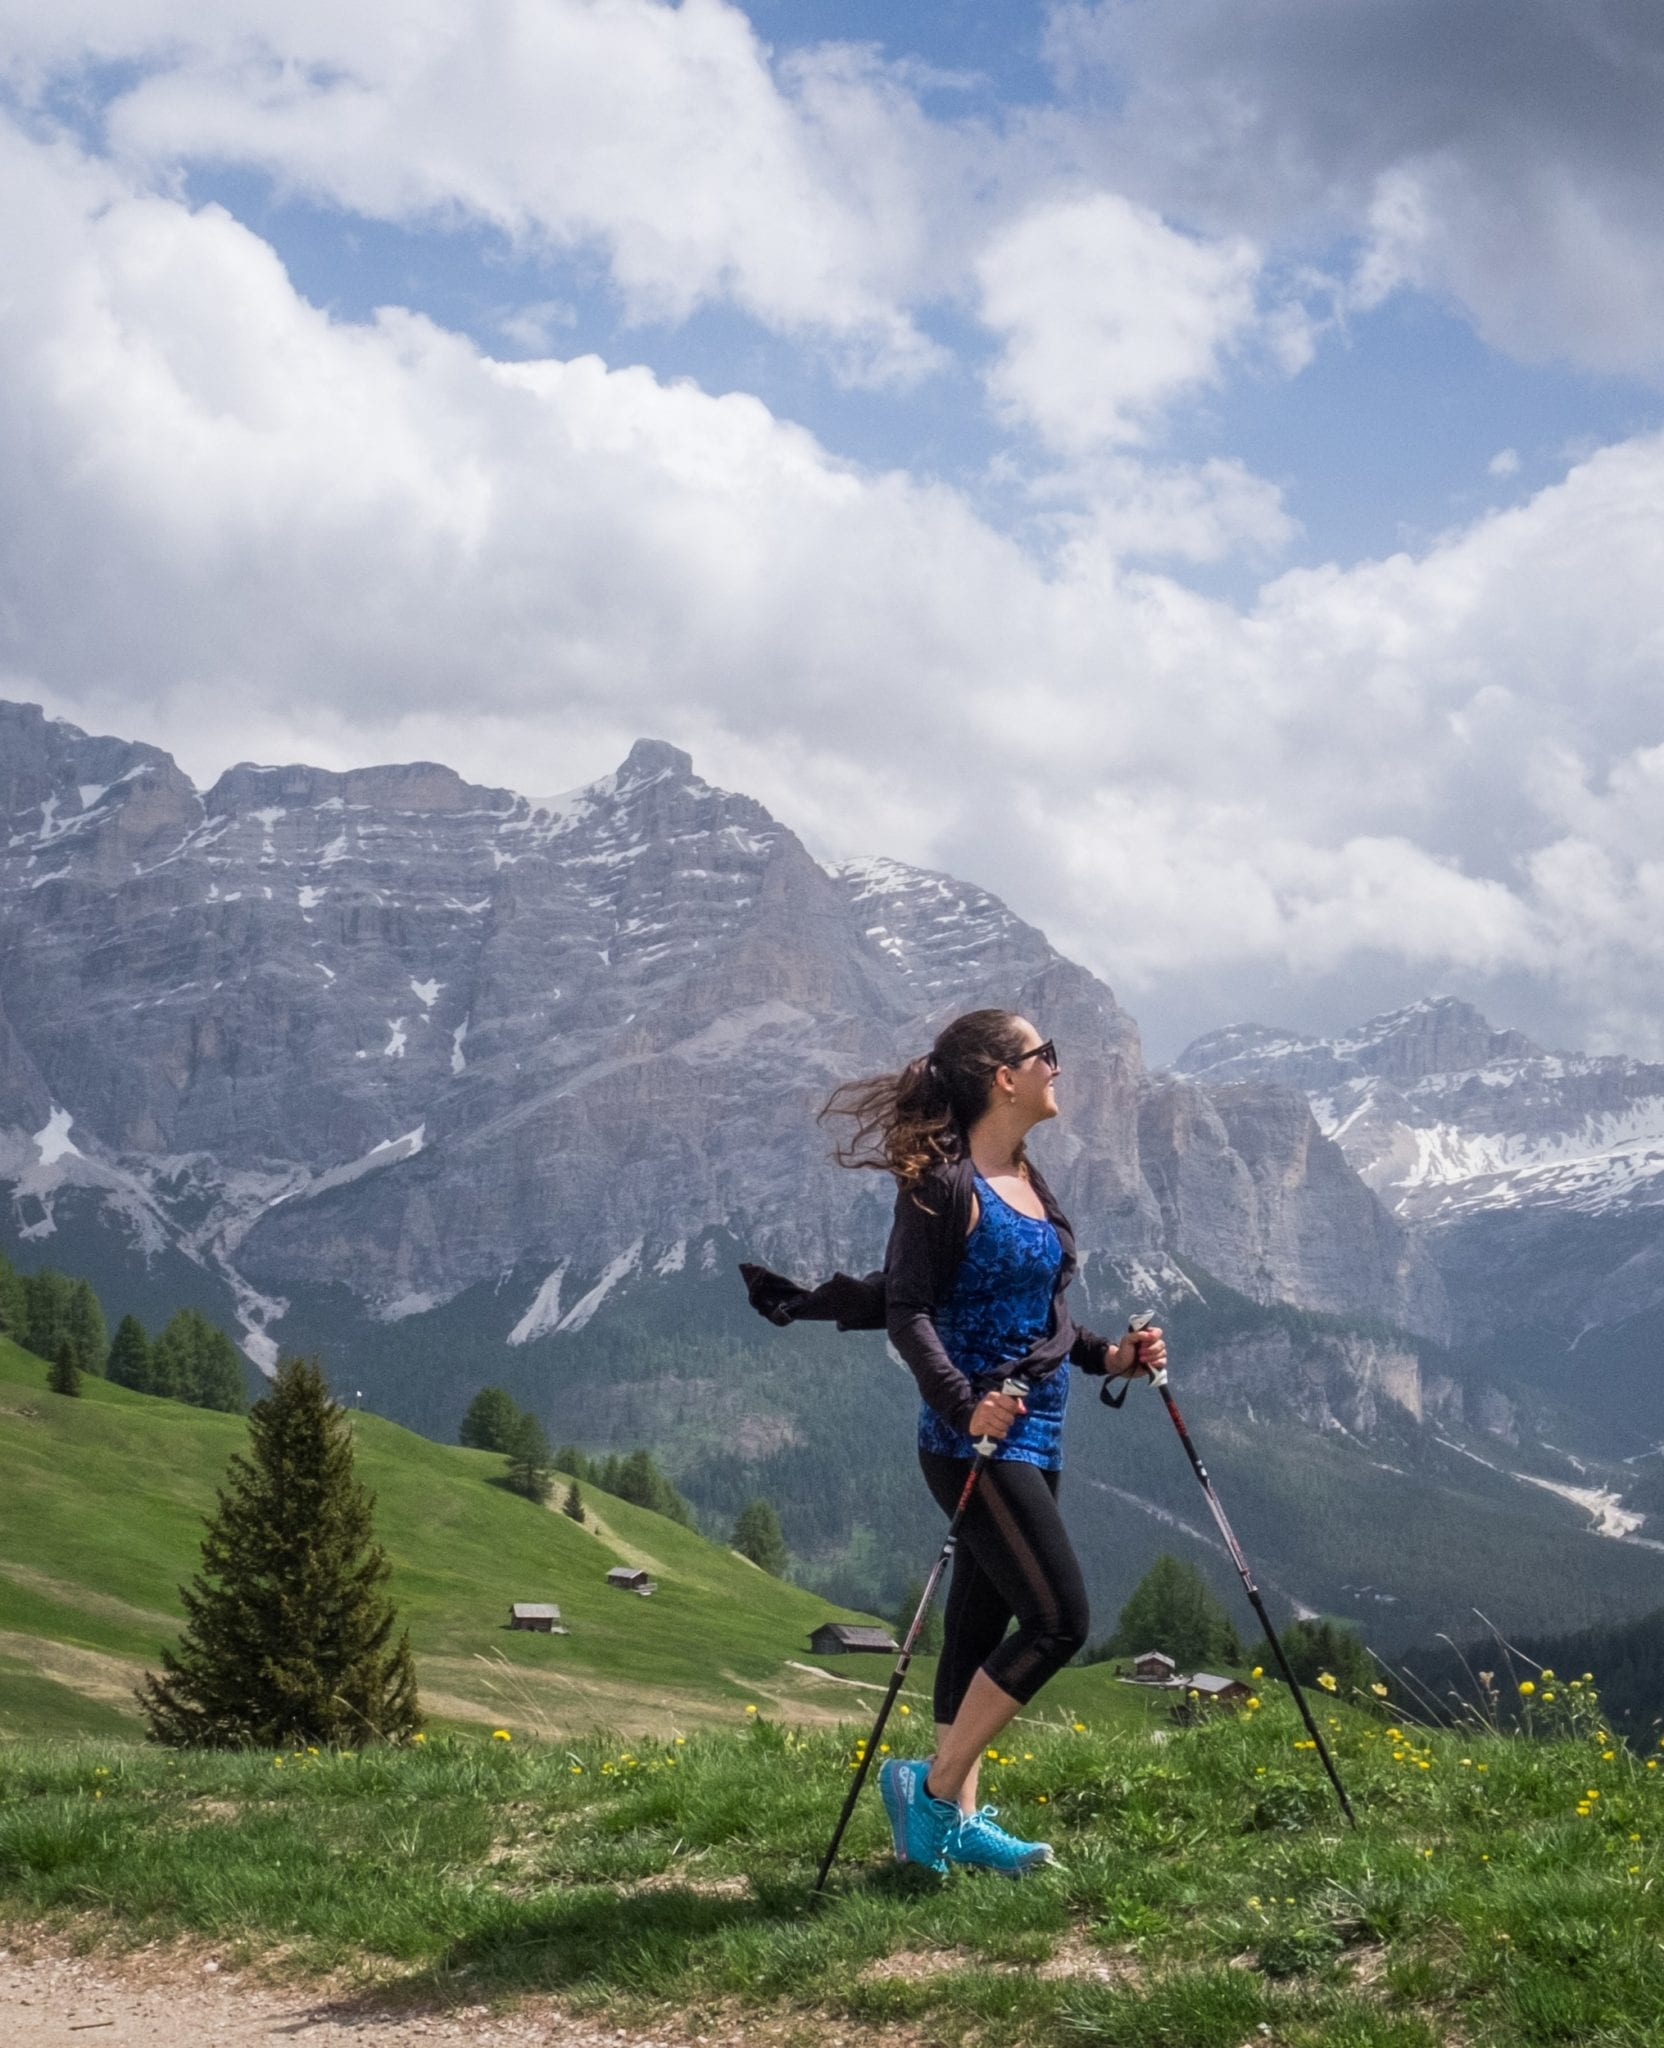 Kate stands on a hill in the Dolomites, holding hiking poles in her hands, illuminated by purple-gray mountains behind her and a cloudy blue and white sky.